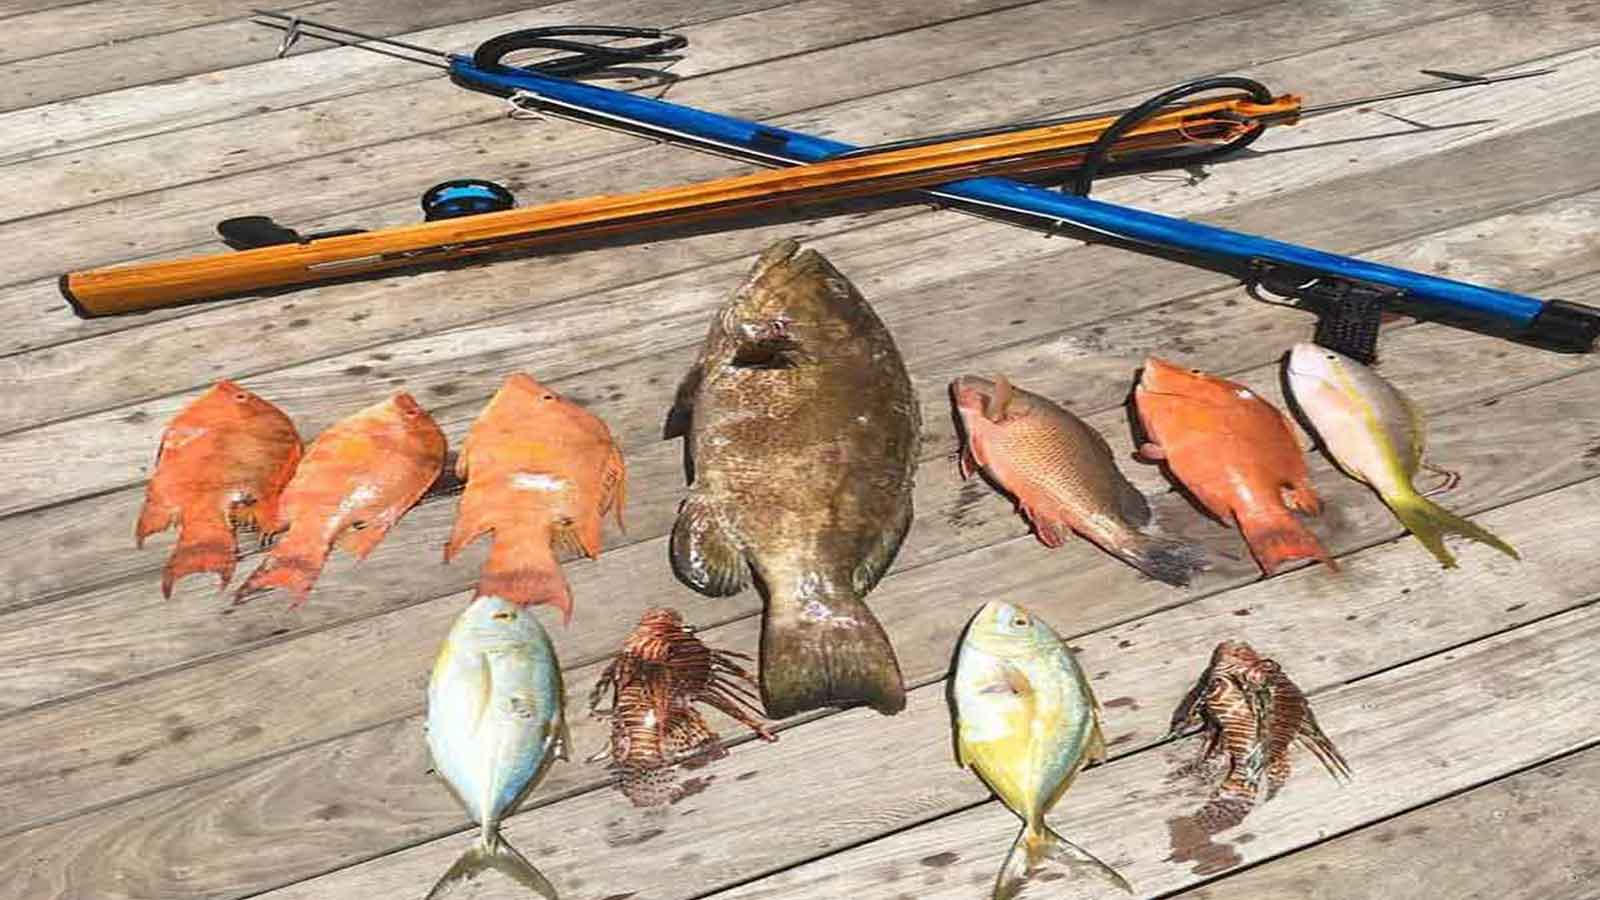 Islamorada Spearfishing Charter